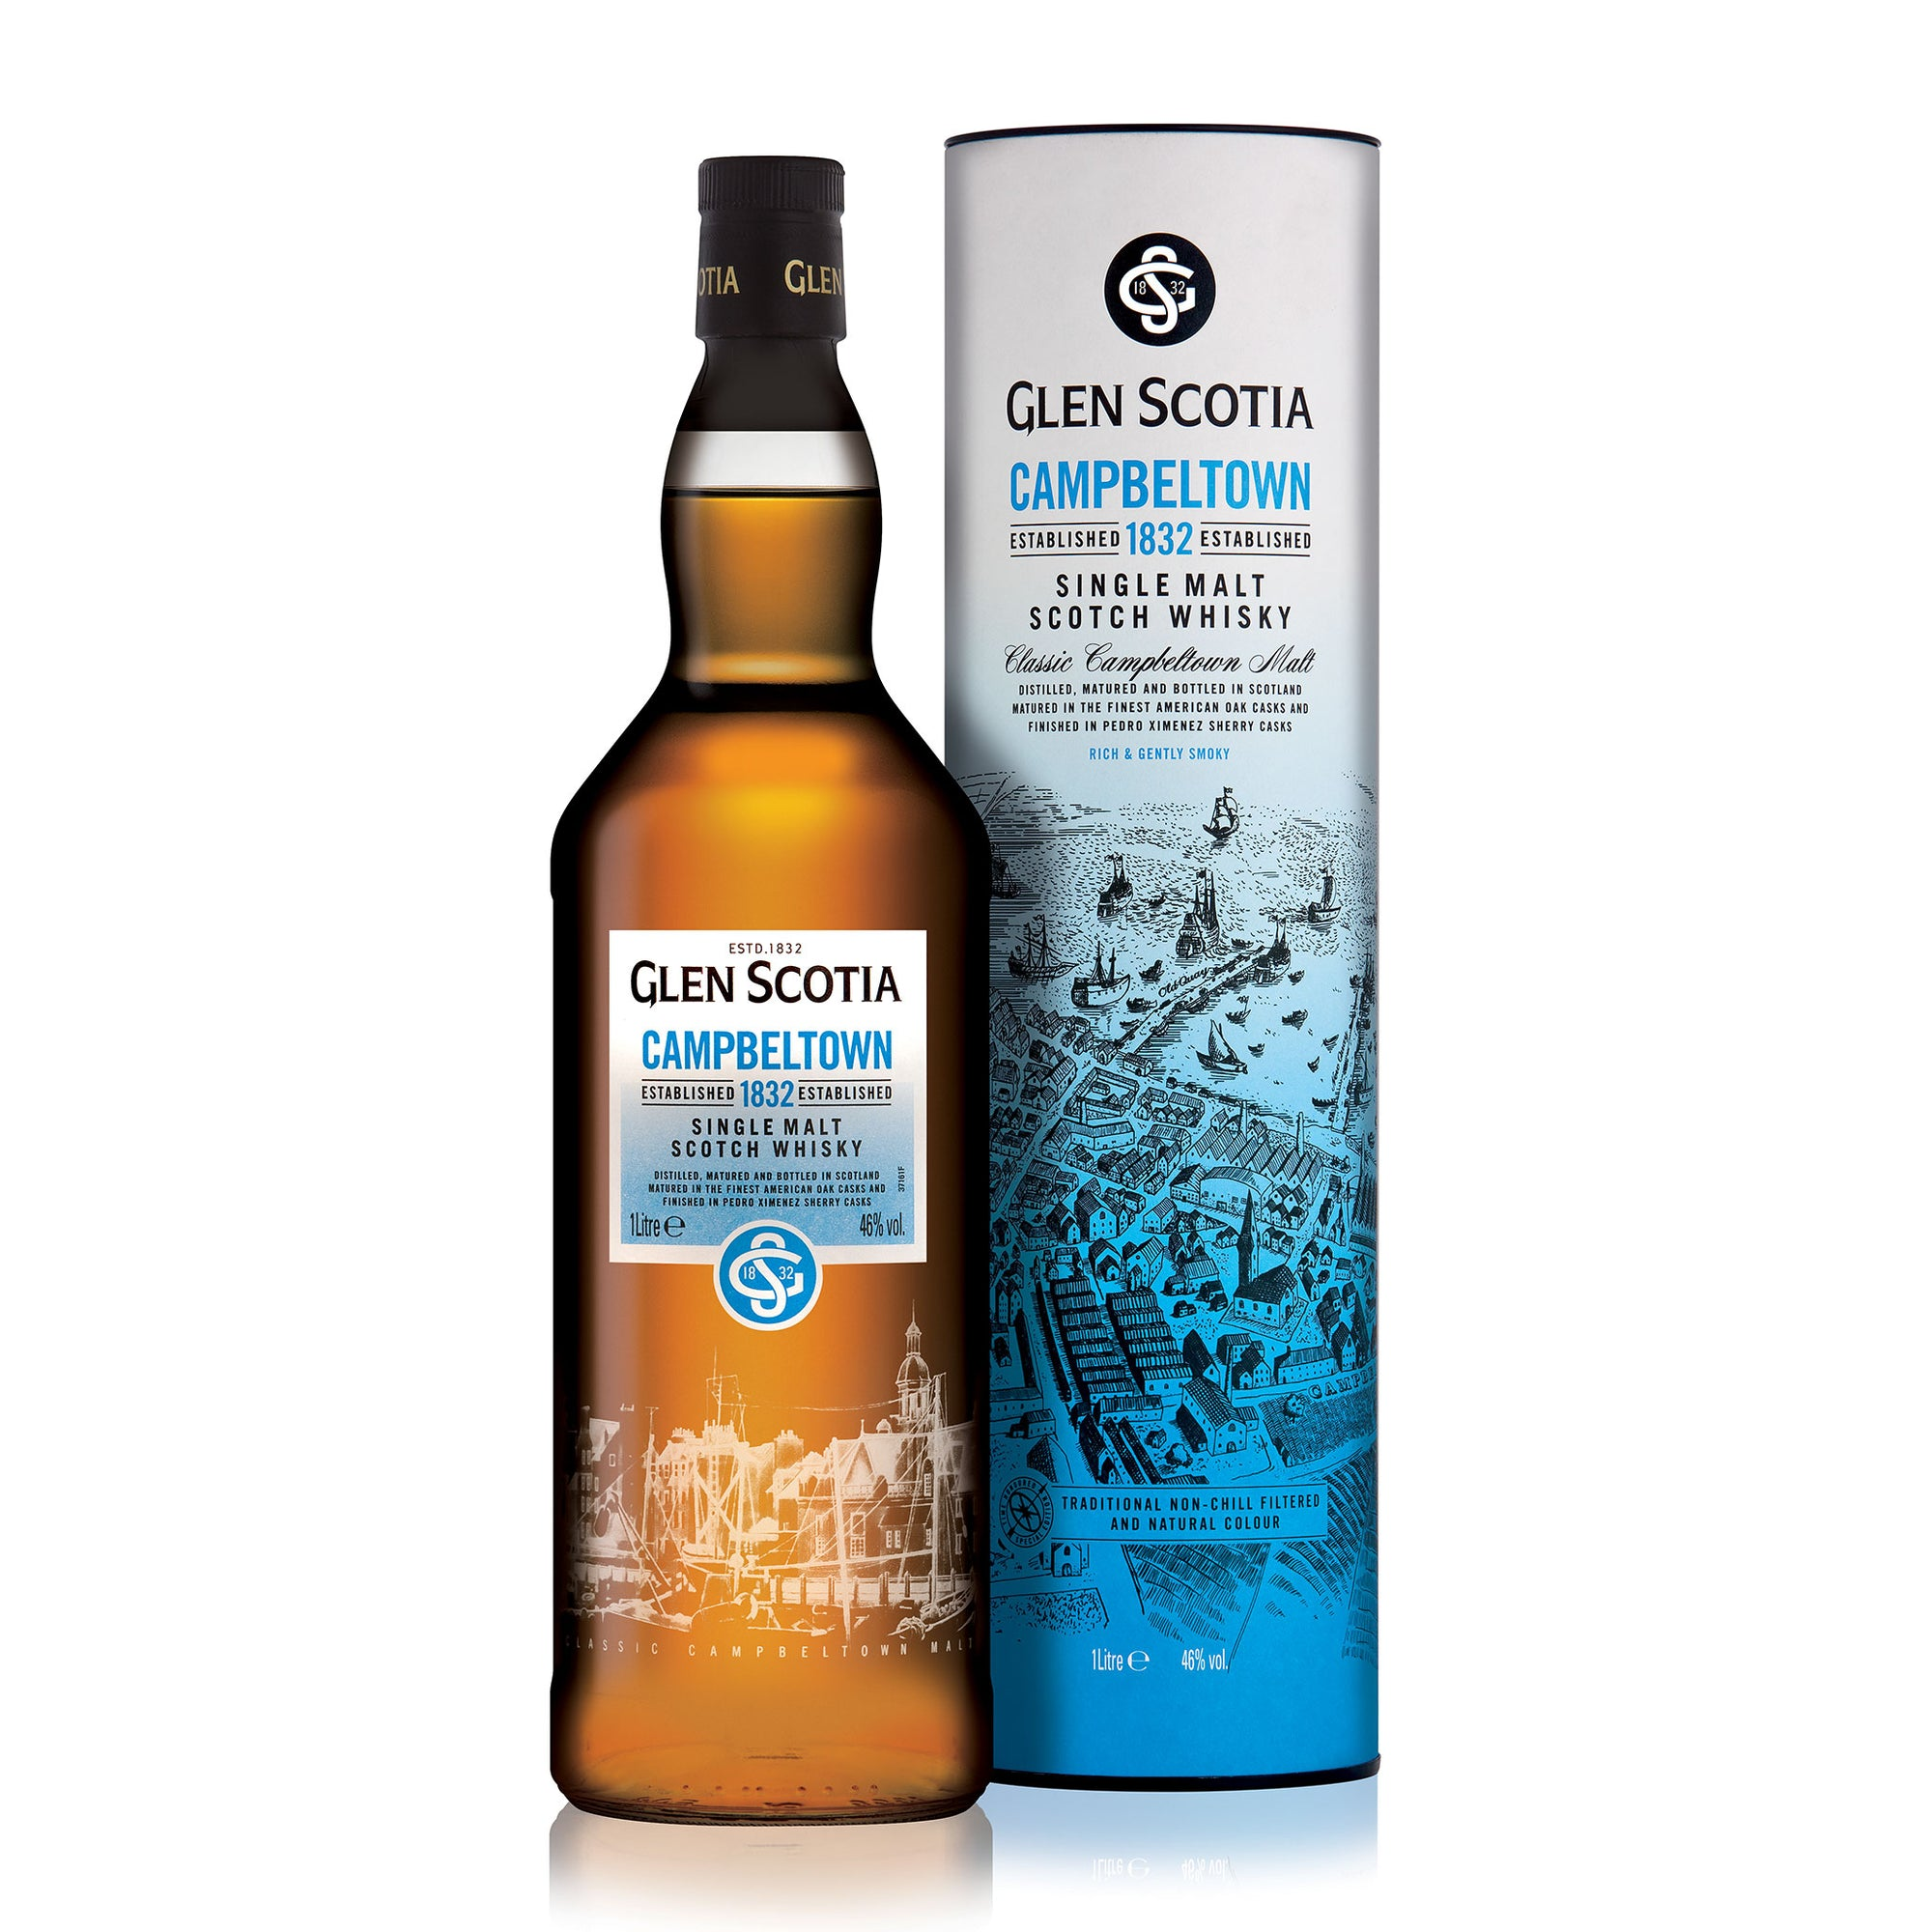 Glen Scotia Campbeltown 1832 Single Malt